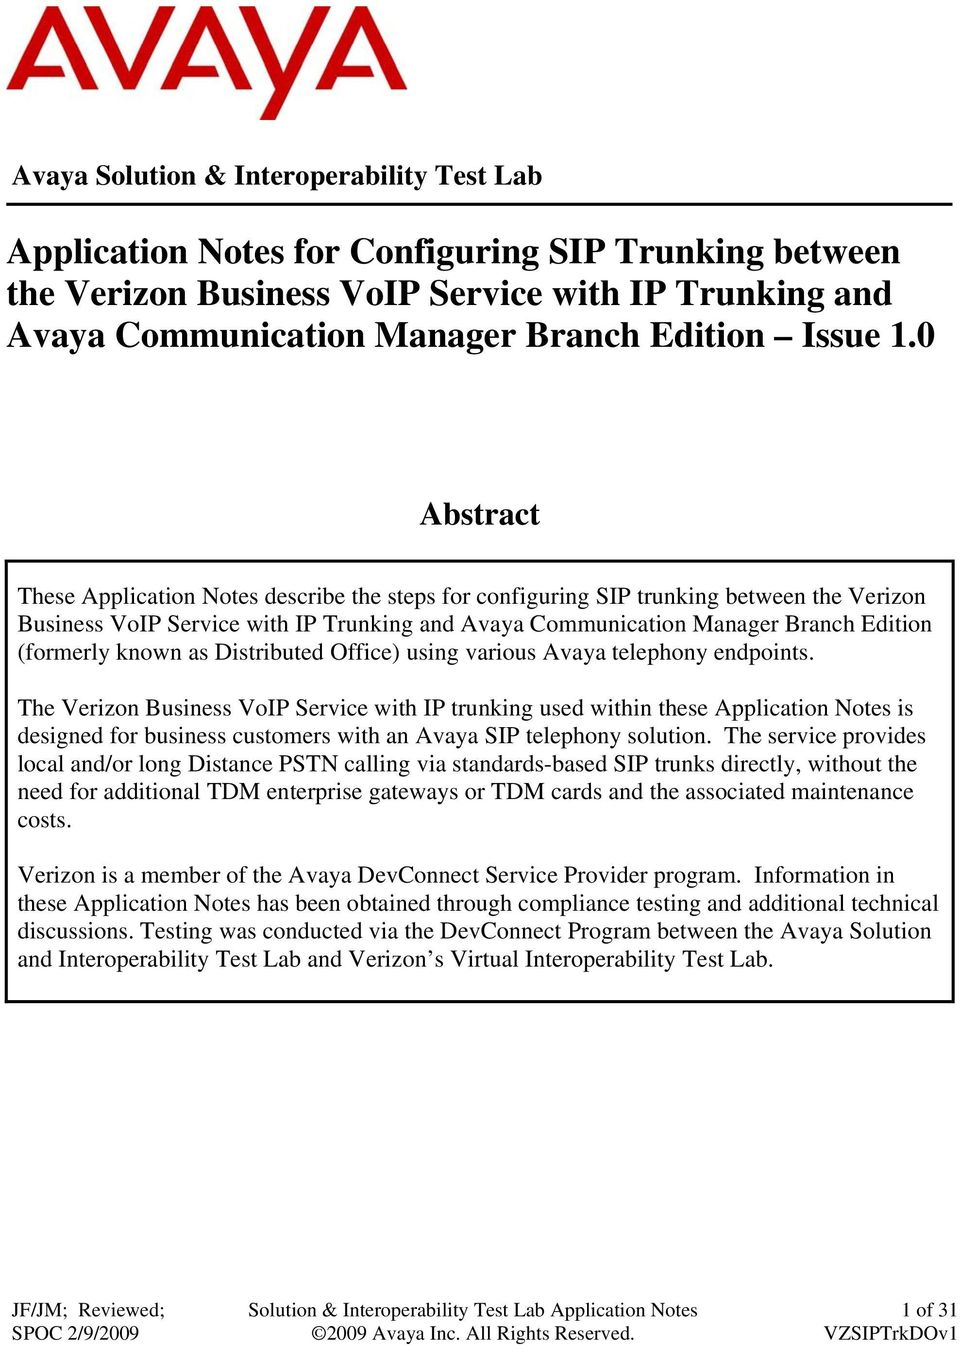 0 Abstract These Application Notes describe the steps for configuring SIP trunking between the Verizon Business VoIP Service with IP Trunking and Avaya Communication Manager Branch Edition (formerly